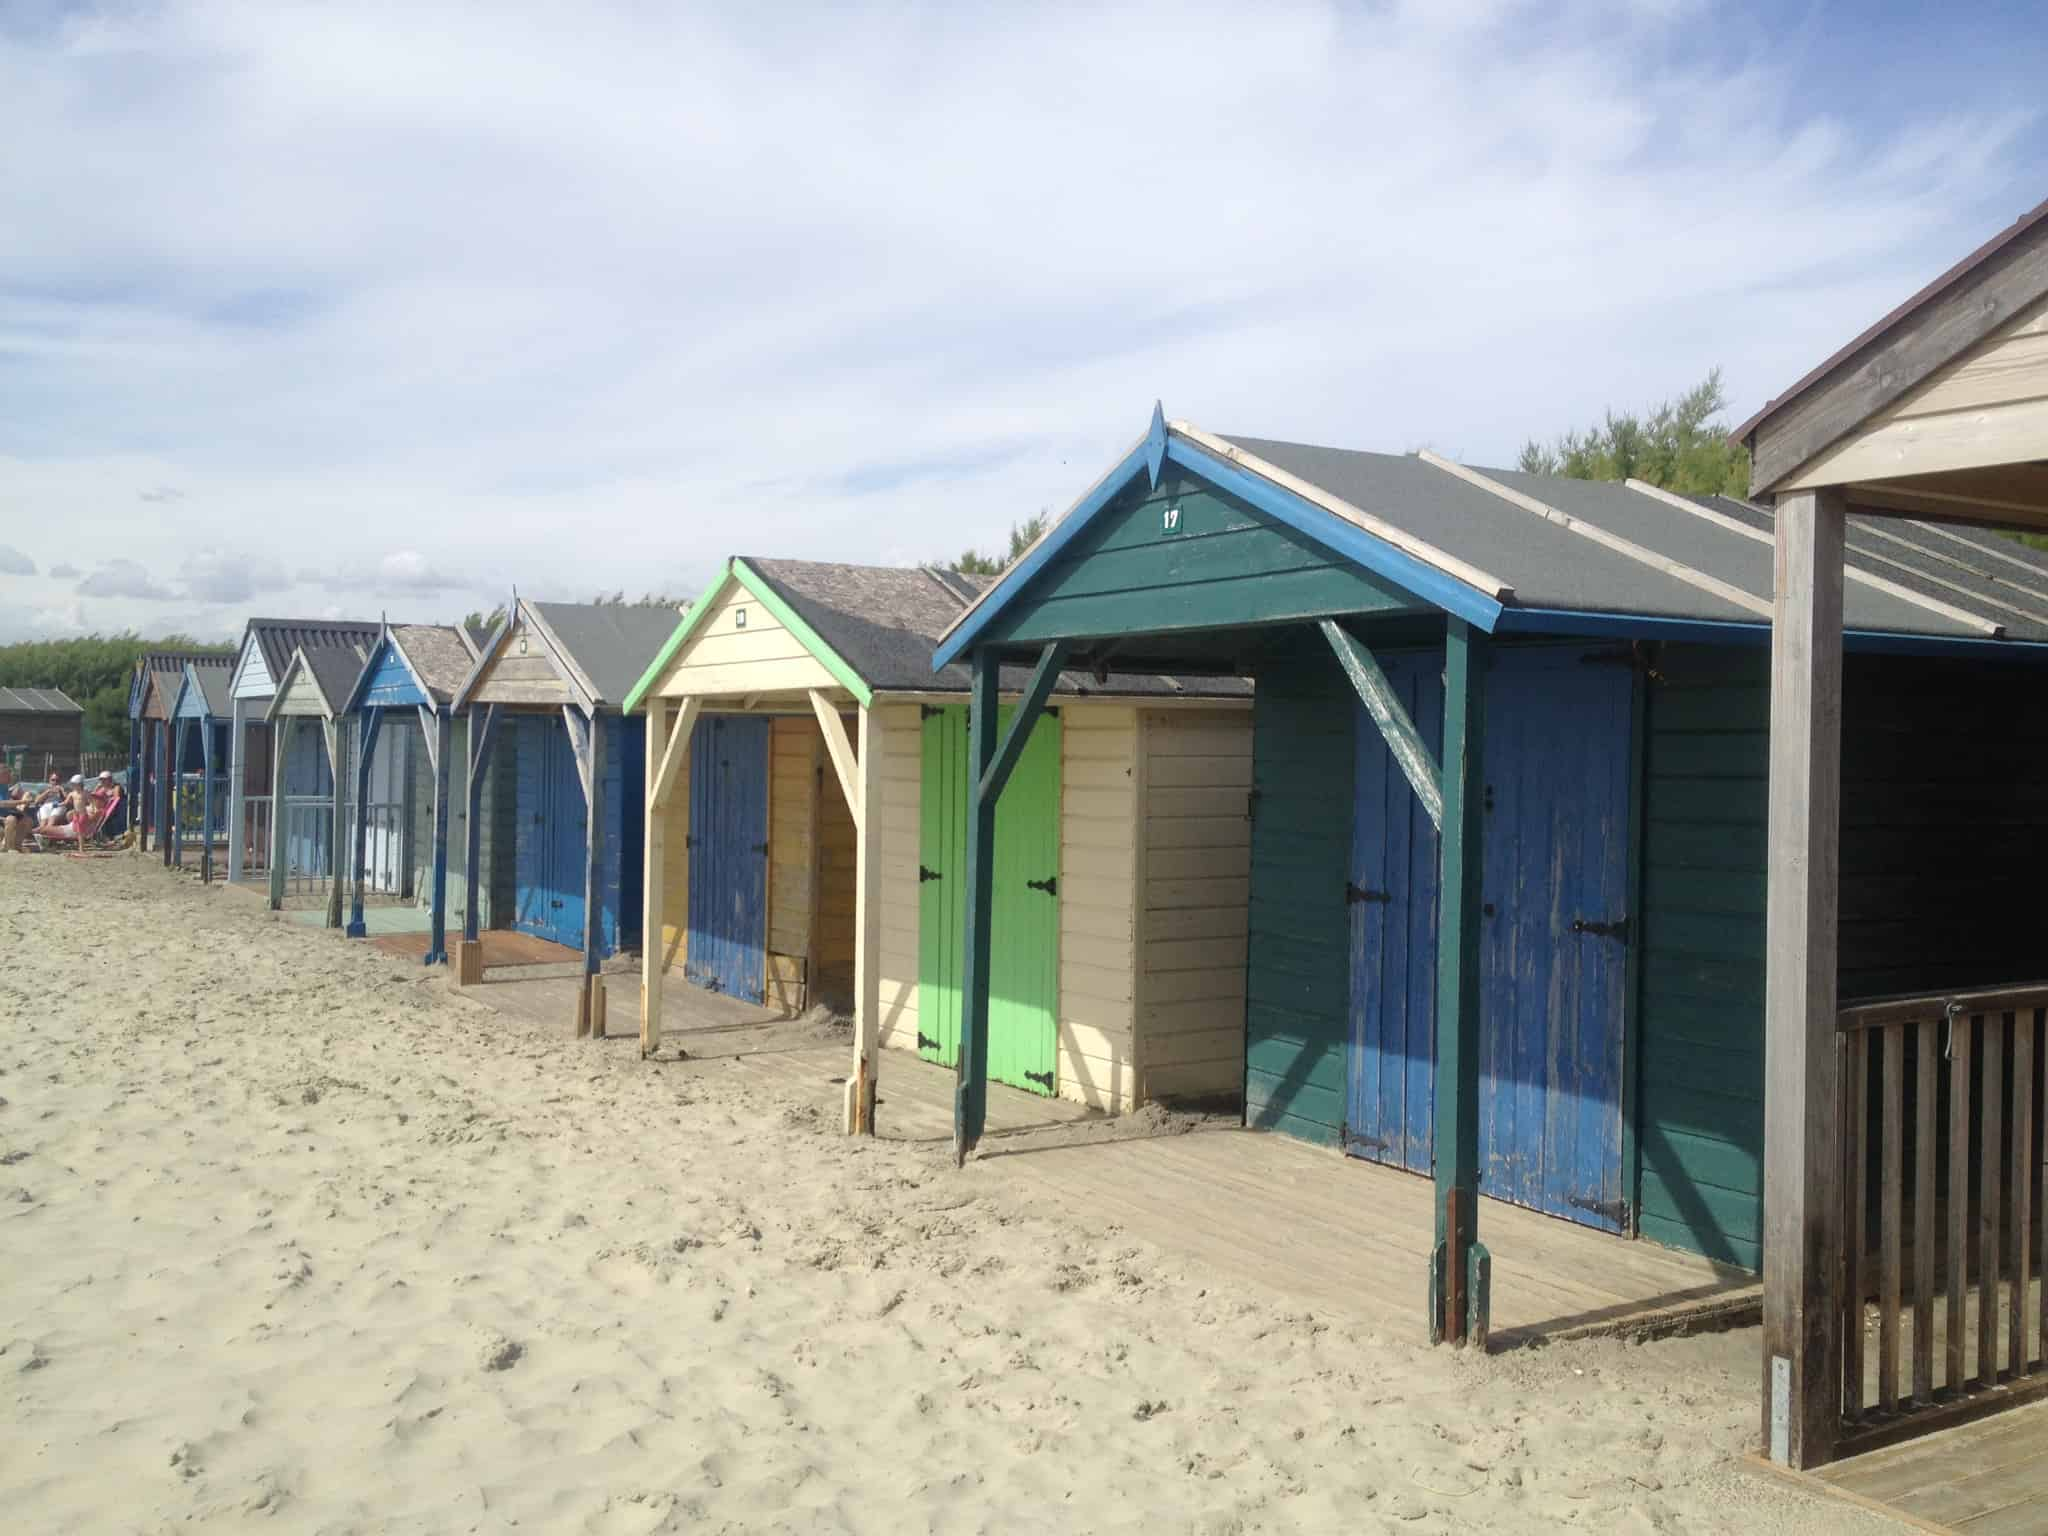 West Wittering Sussex | My Travel Monkey